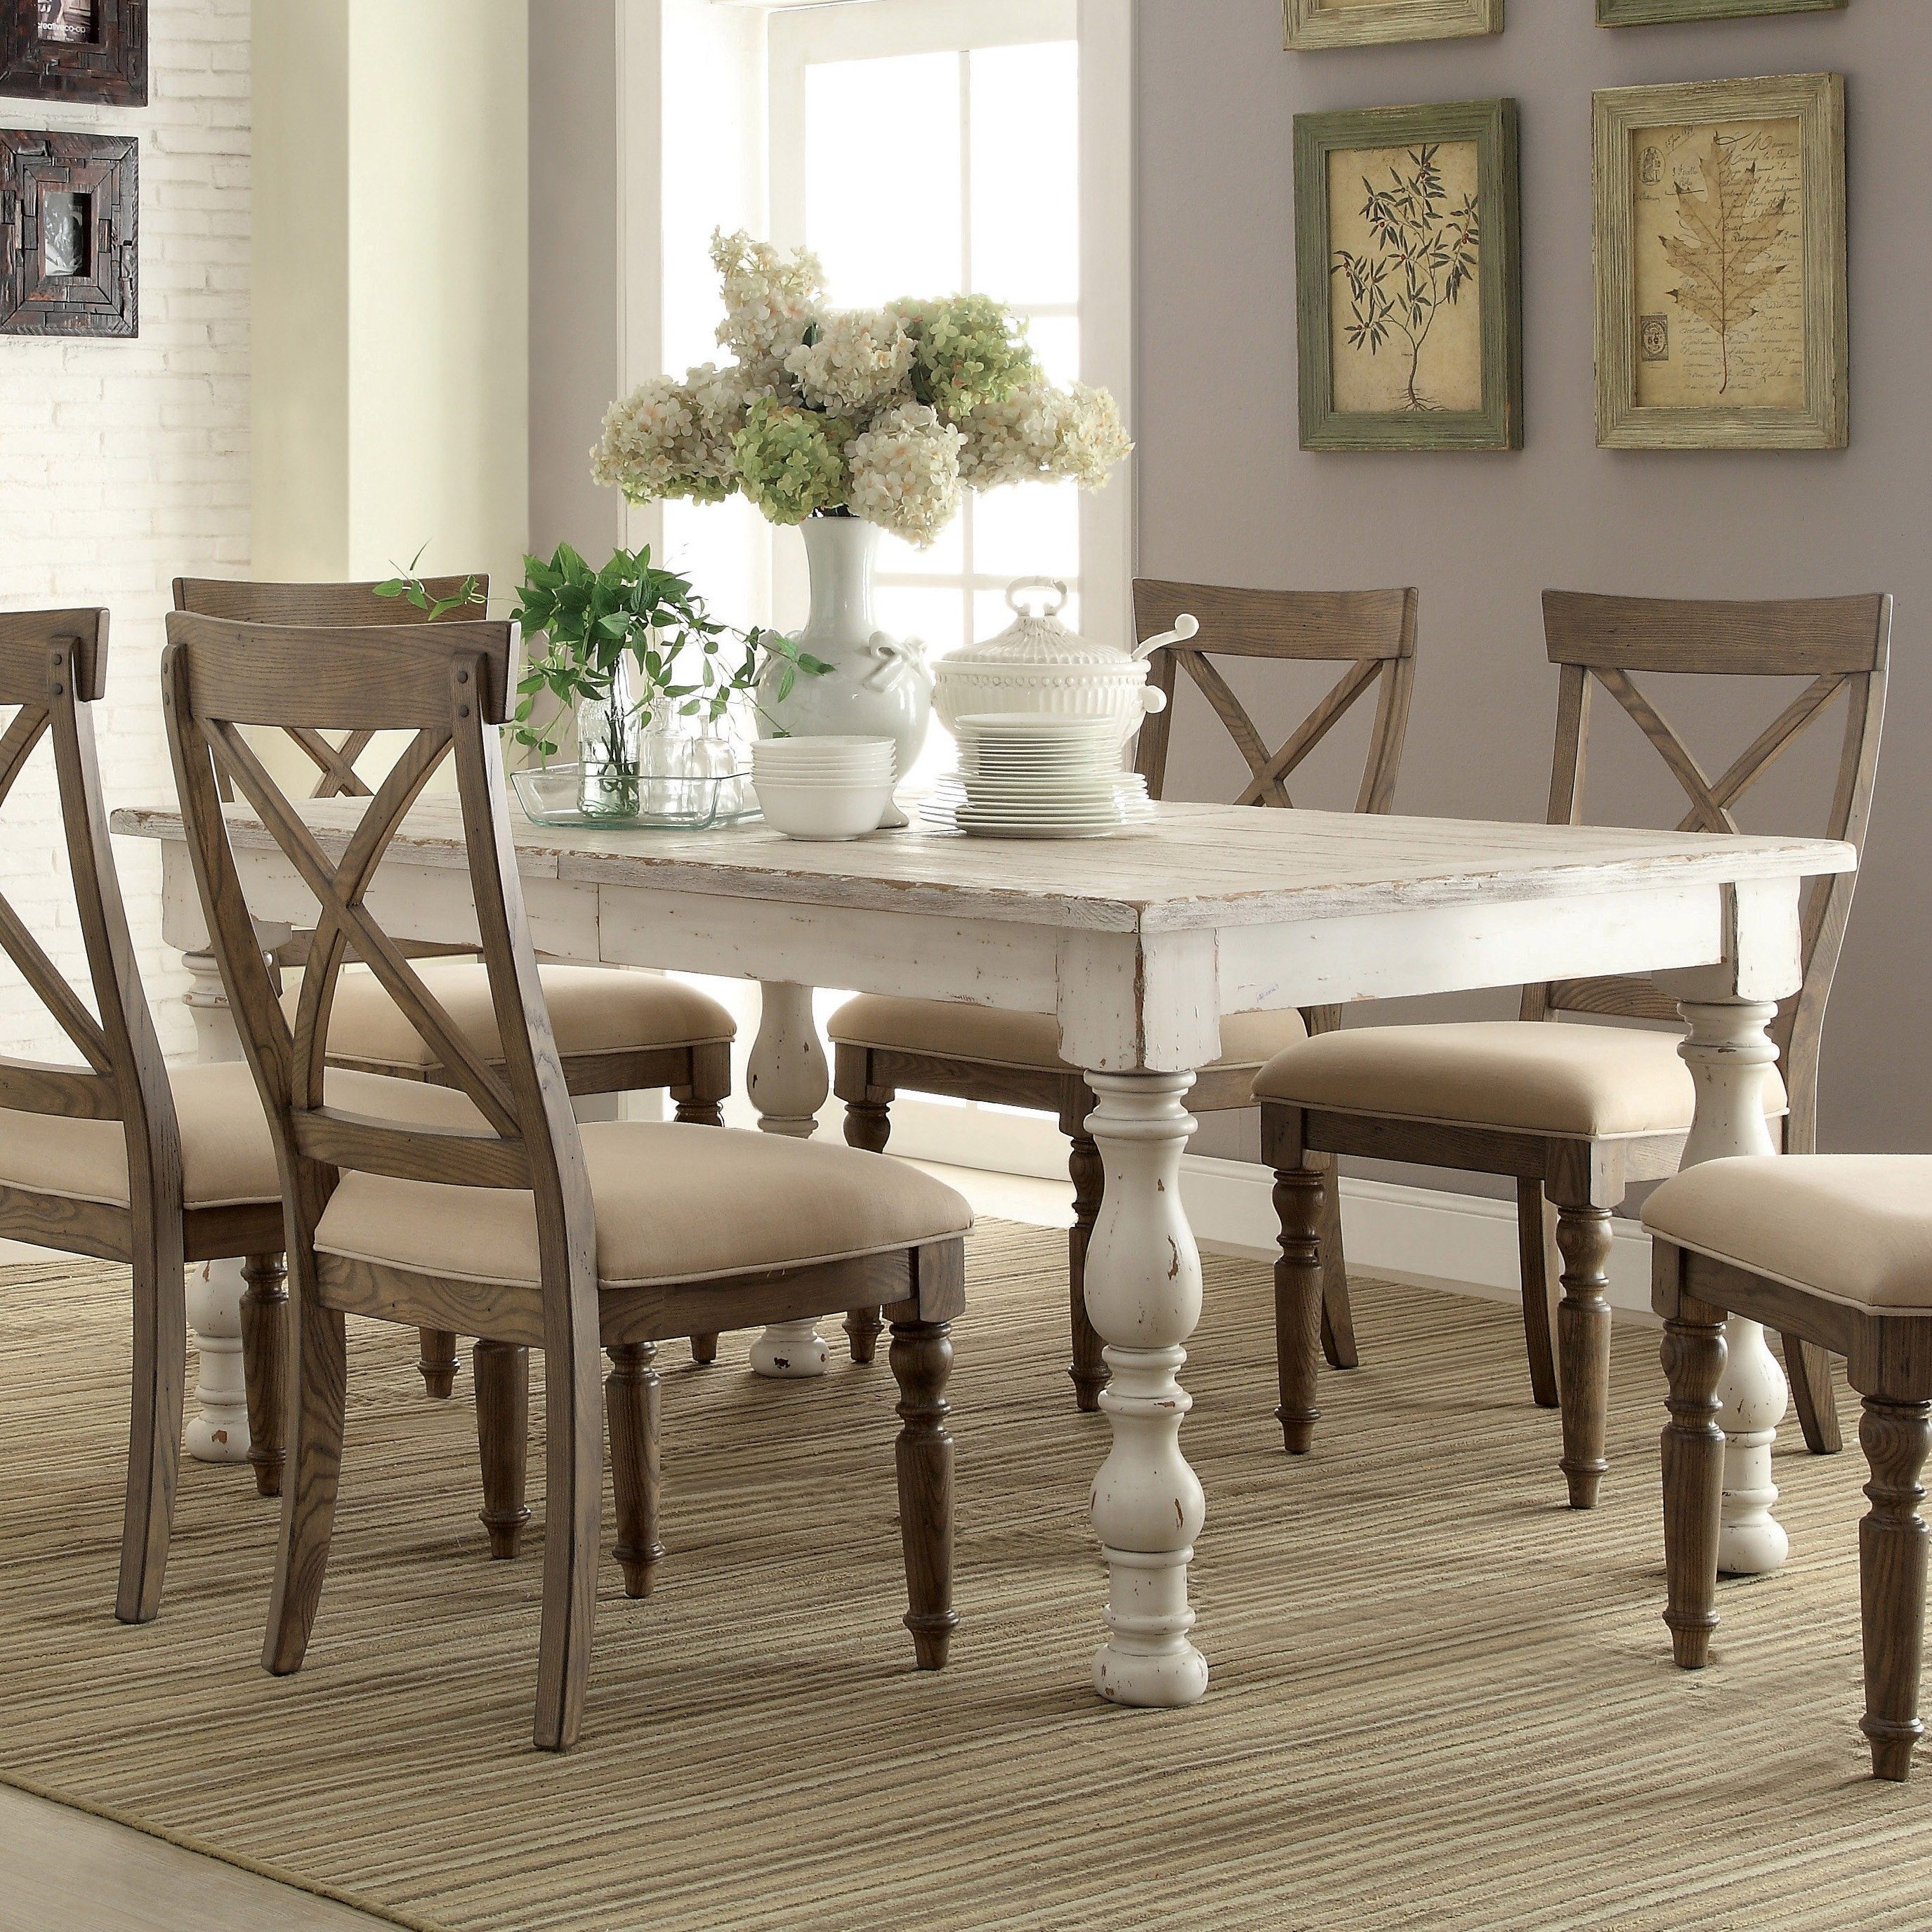 Dining Room Inexpensive Dining Room Table With Bench And: Aberdeen Wood Rectangular Dining Table And Chairs In